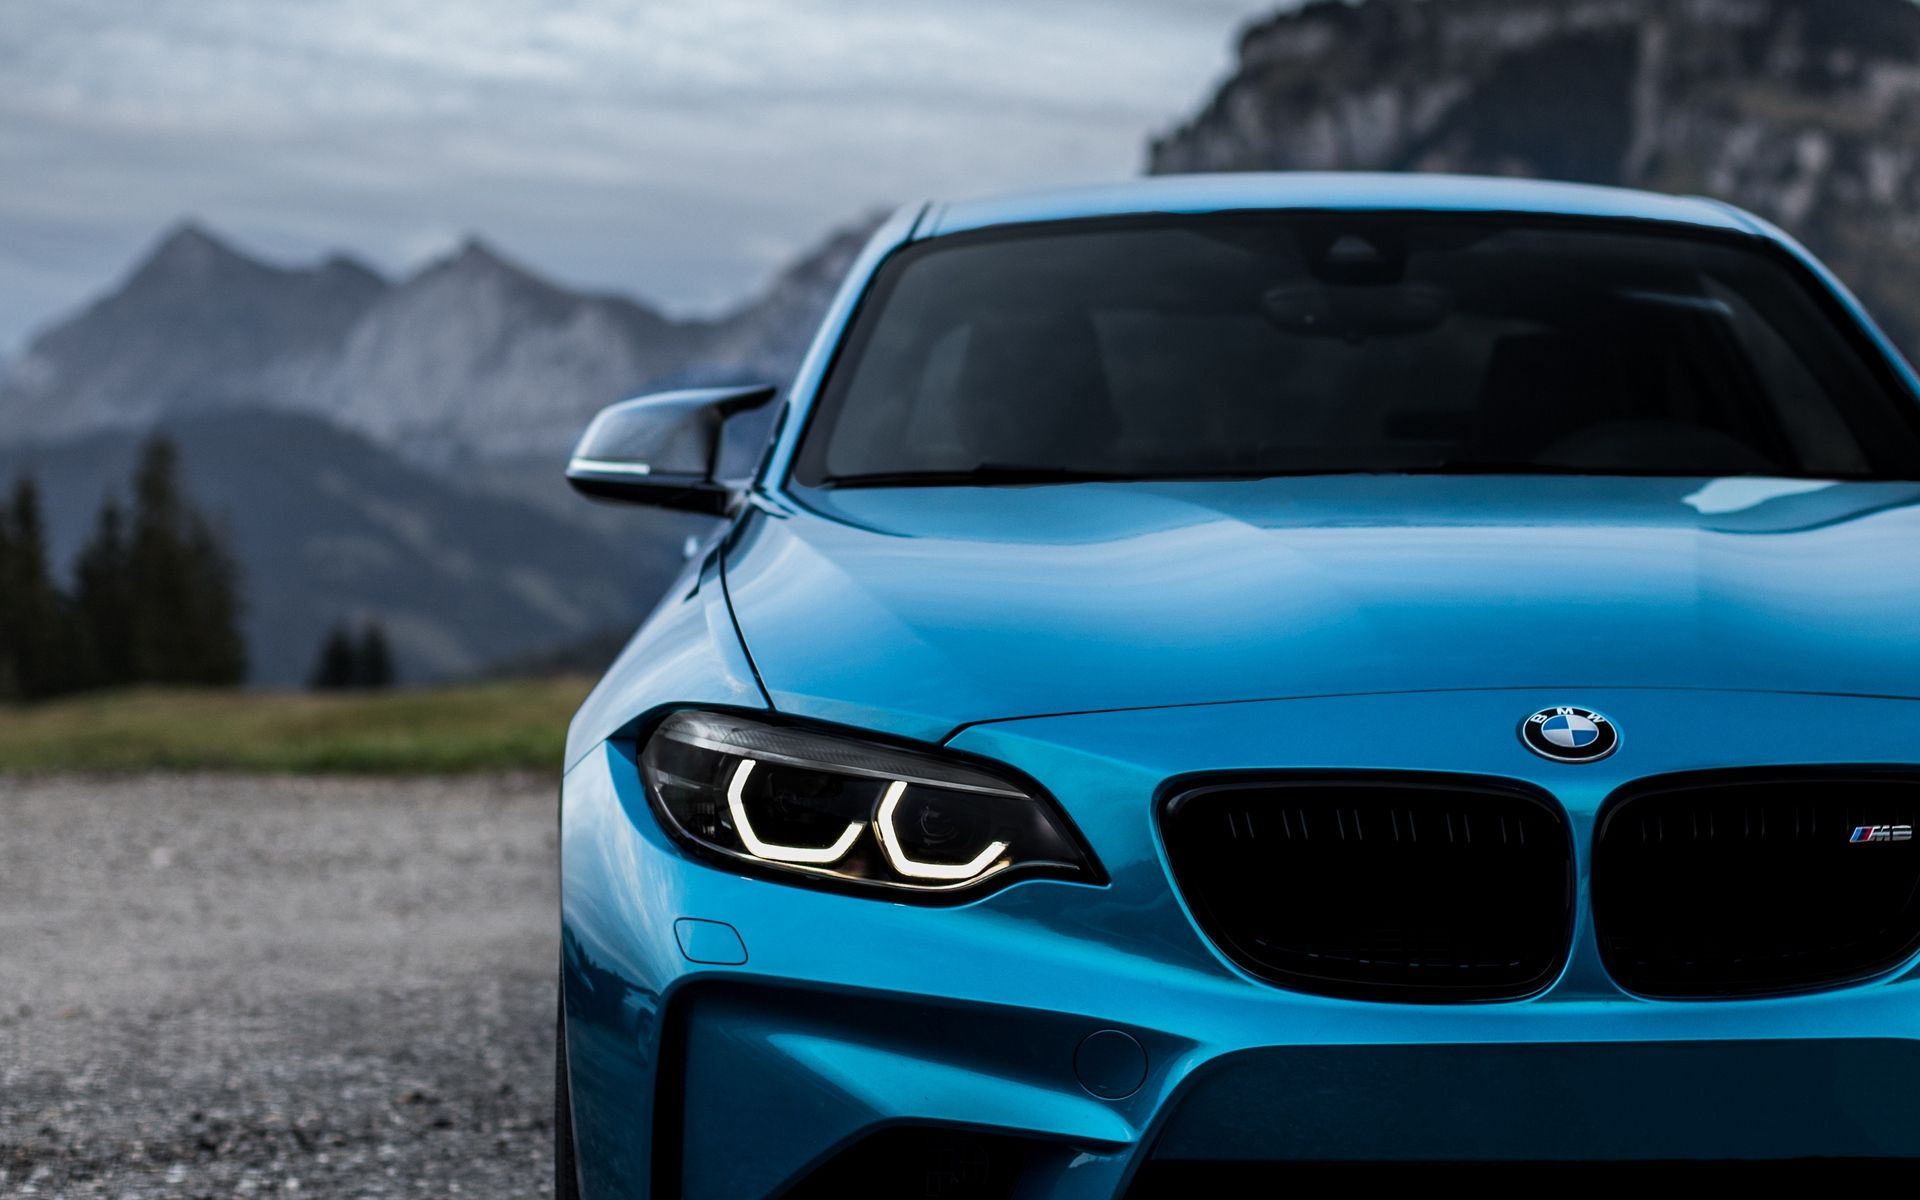 M2 Blue Wallpaper Hd Bmw Wallpapers Bmw Car Backgrounds